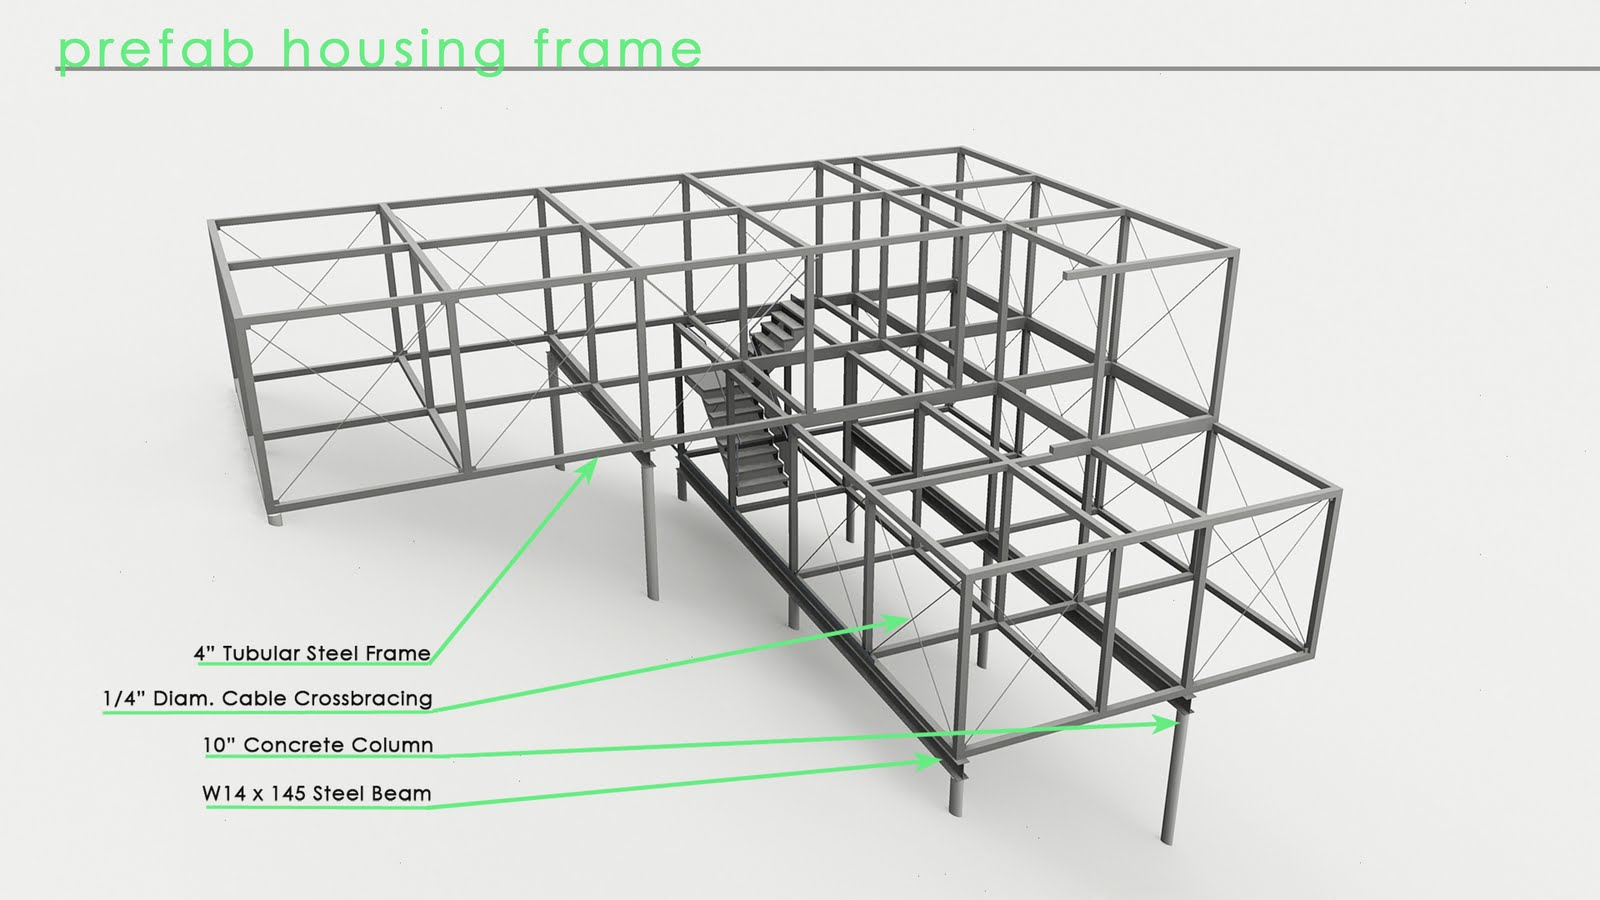 Steel frame house definition home design and interior for Define prefabricated